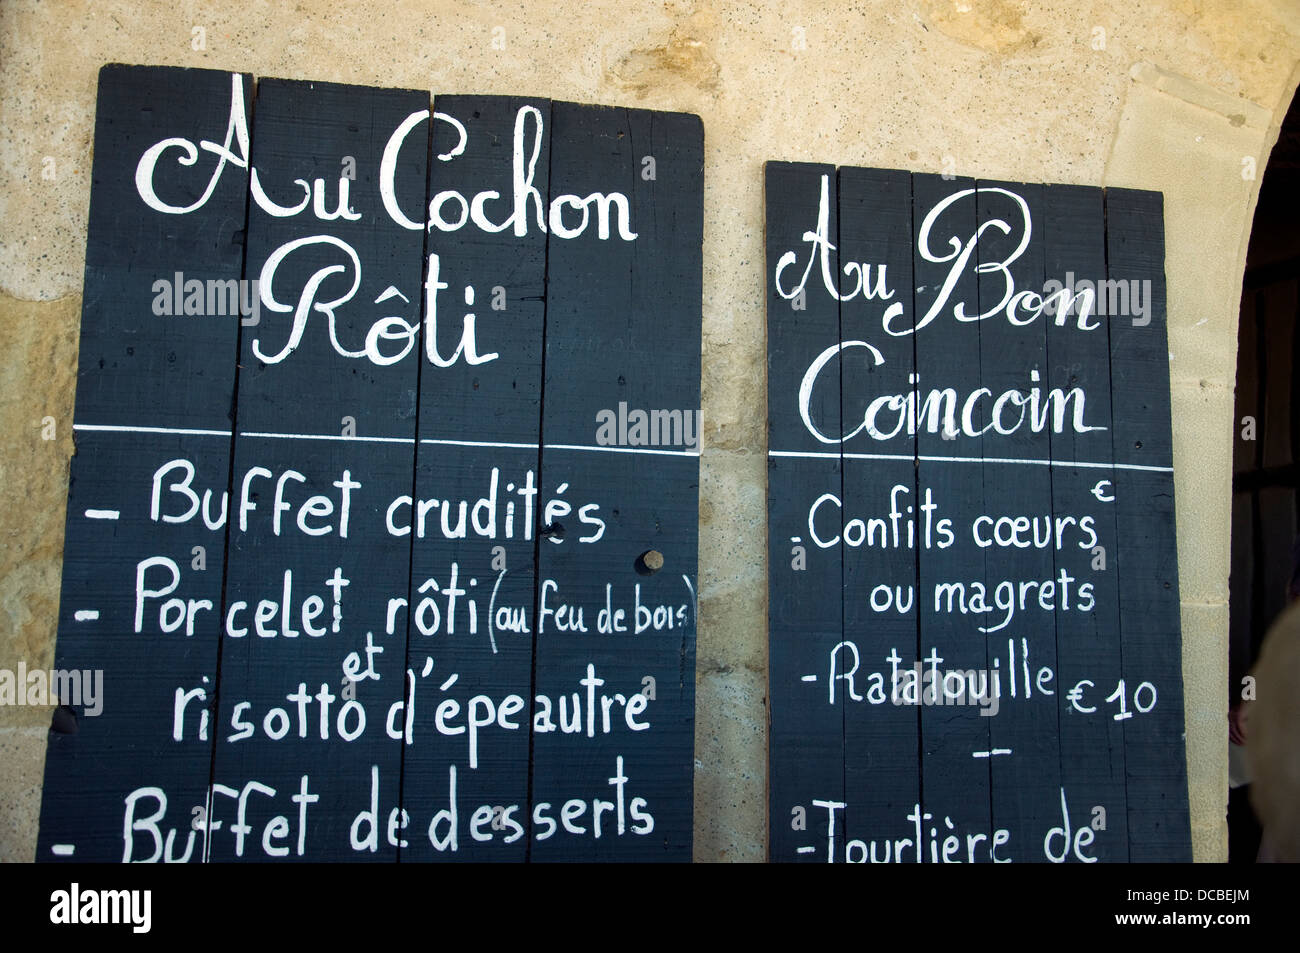 Time for lunch in Lupiac during the fête honoring native son D'Artagnan; roast piglet is prominent on one - Stock Image